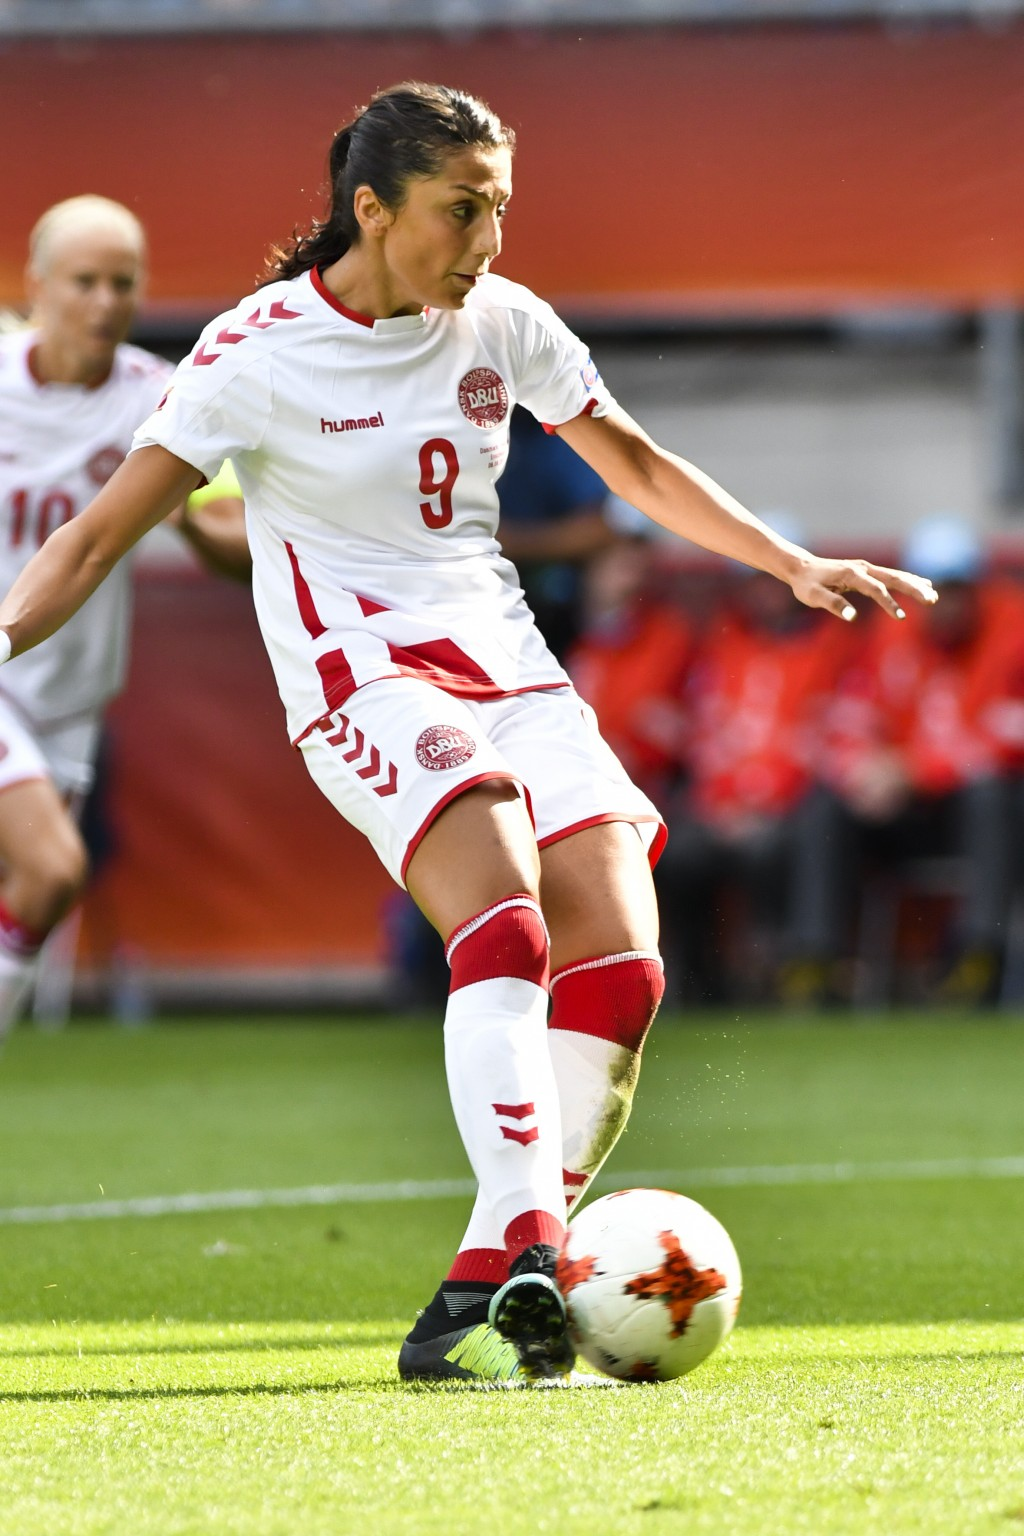 FILE - In this file photo dated Sunday, Aug. 6, 2017, Denmark's Nadia Nadim kicks a penalty during the Women's Euro 2017 final soccer match against  N...